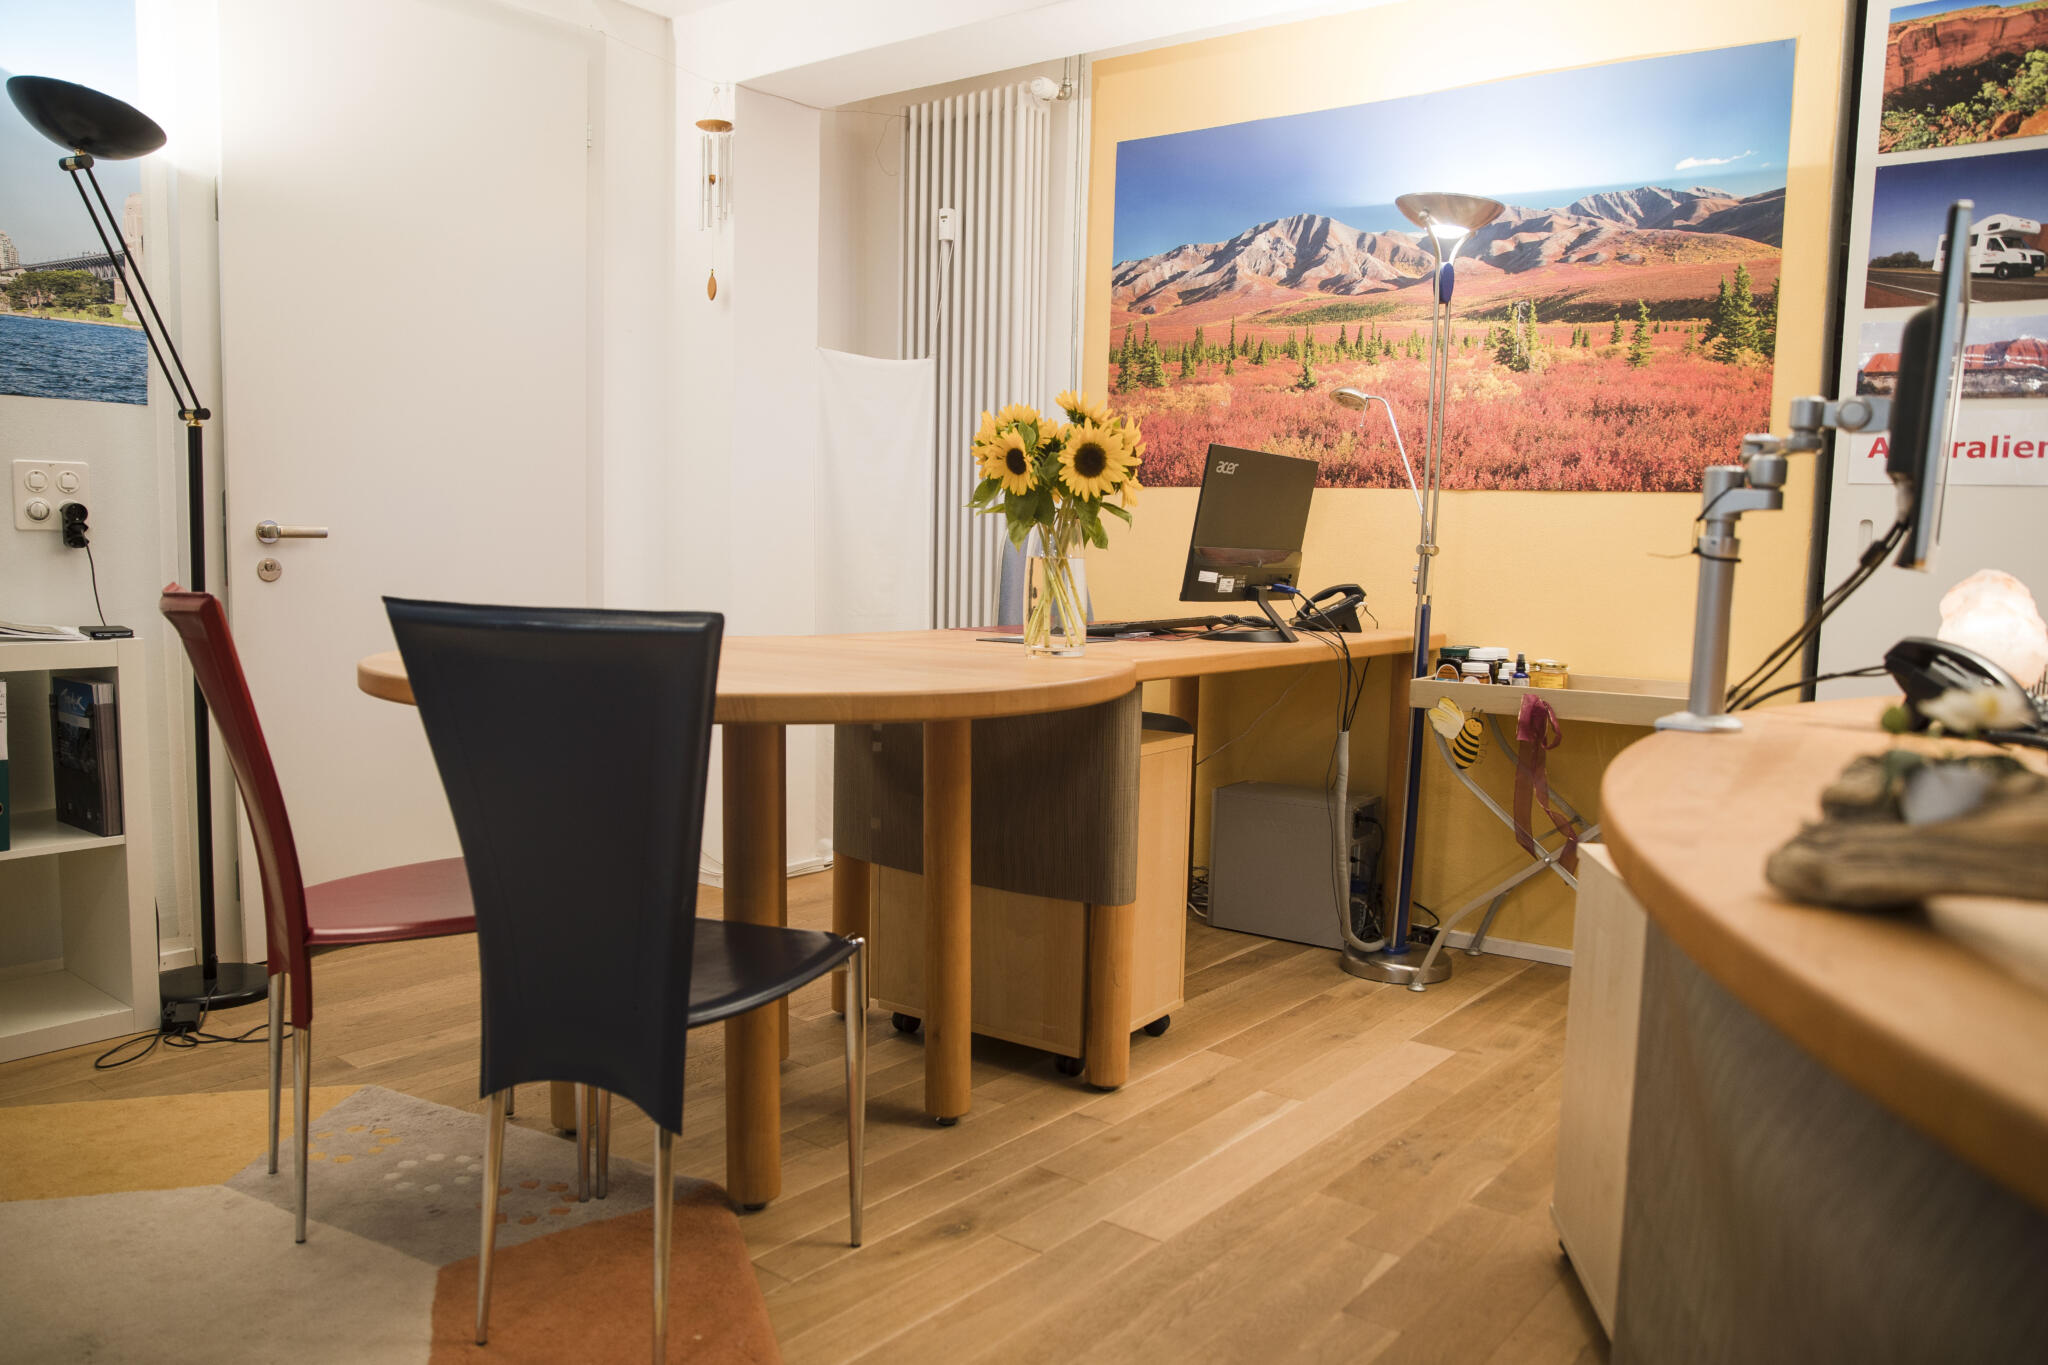 Beatrix Travel Reisebüro Rapperswil